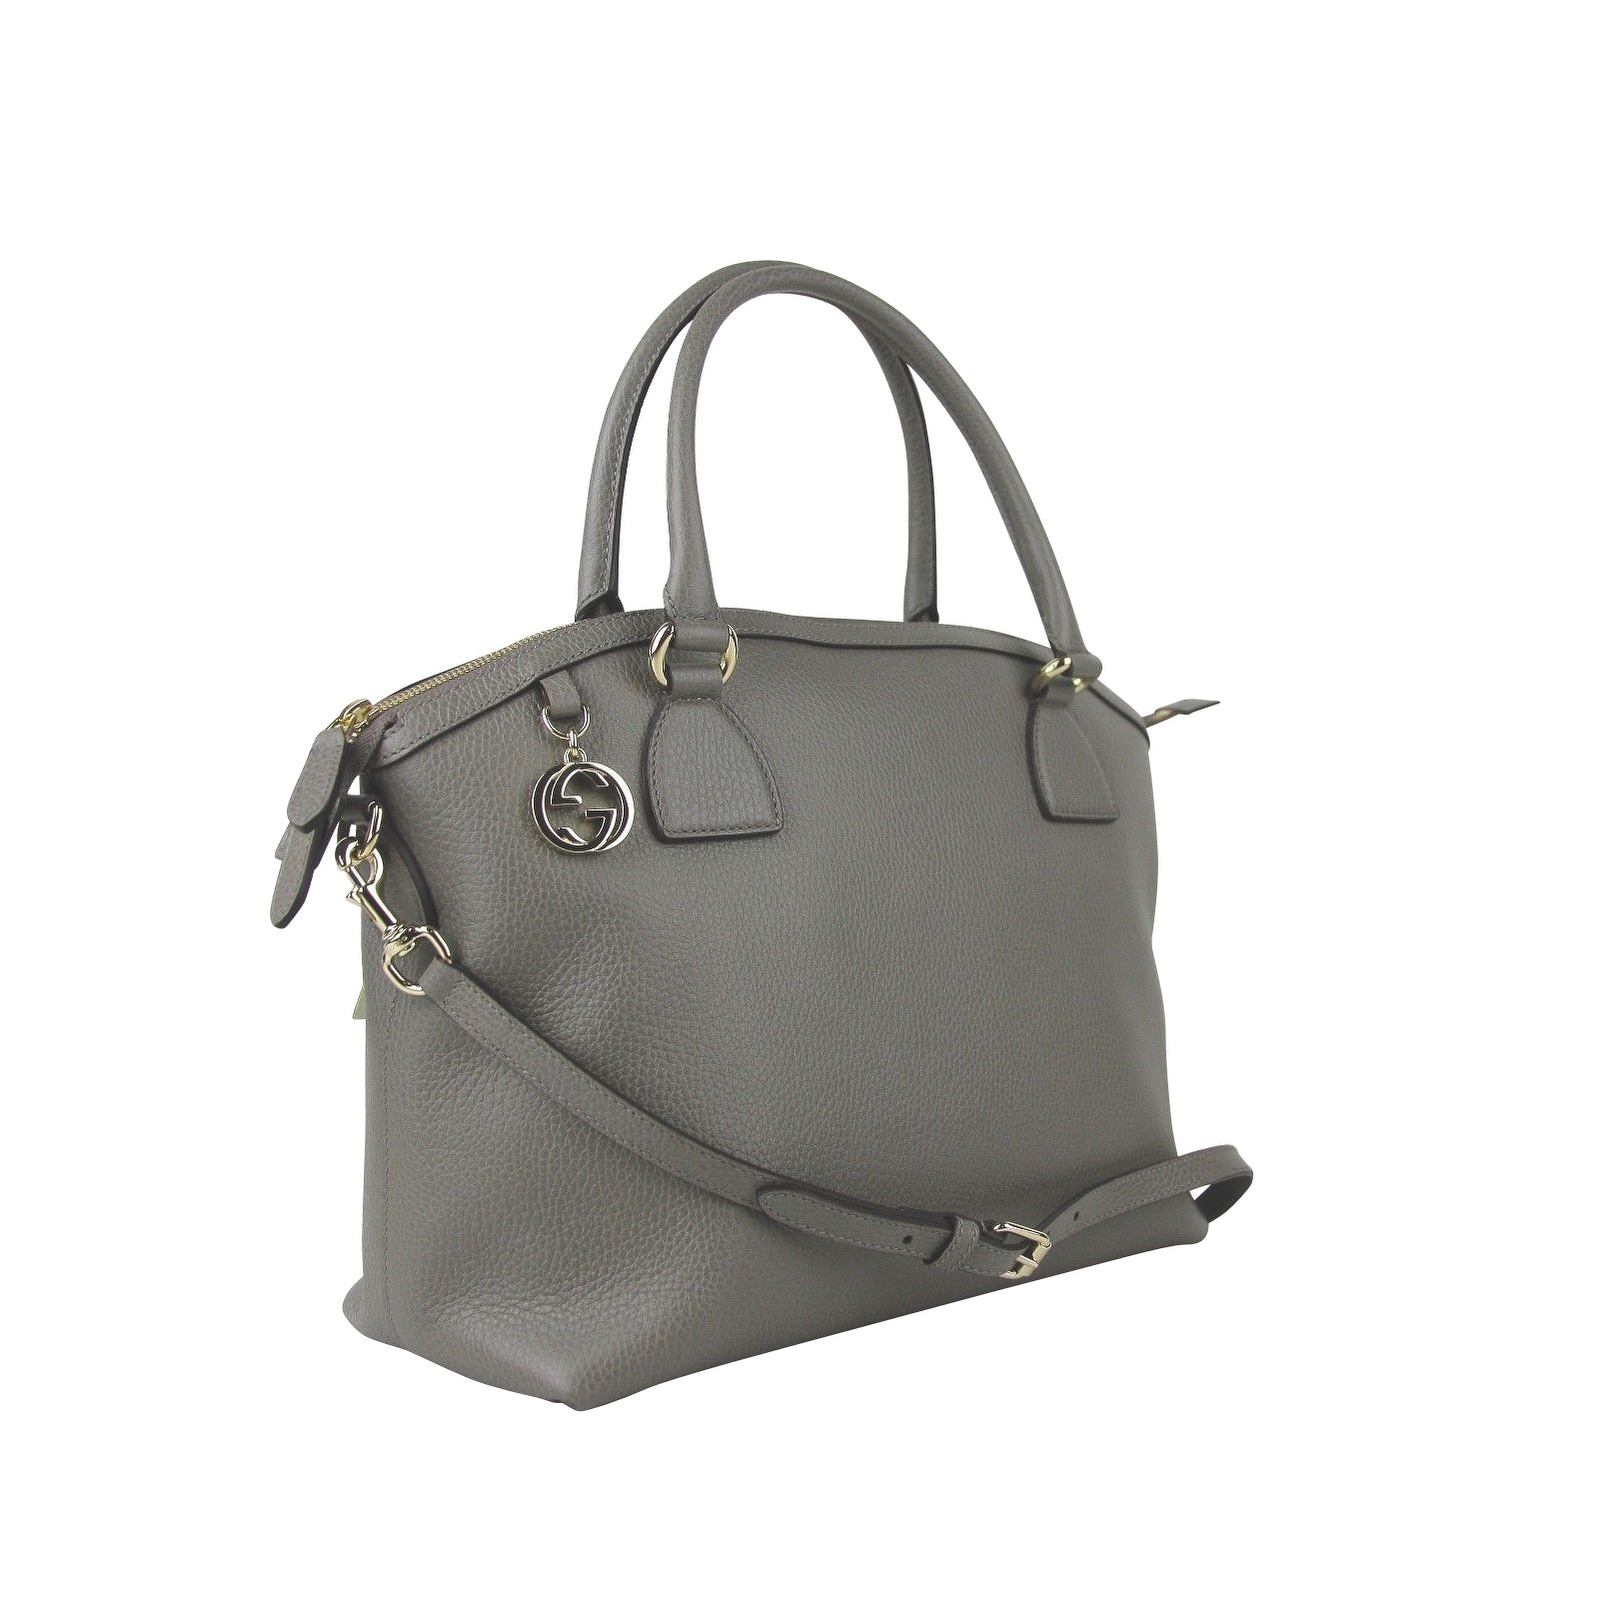 9b9f3839d Shop Gucci GG Charm Grey Leather Large Convertible Dome Bag With Detachabel Strap  449660 1226 - Free Shipping Today - Overstock - 27603248